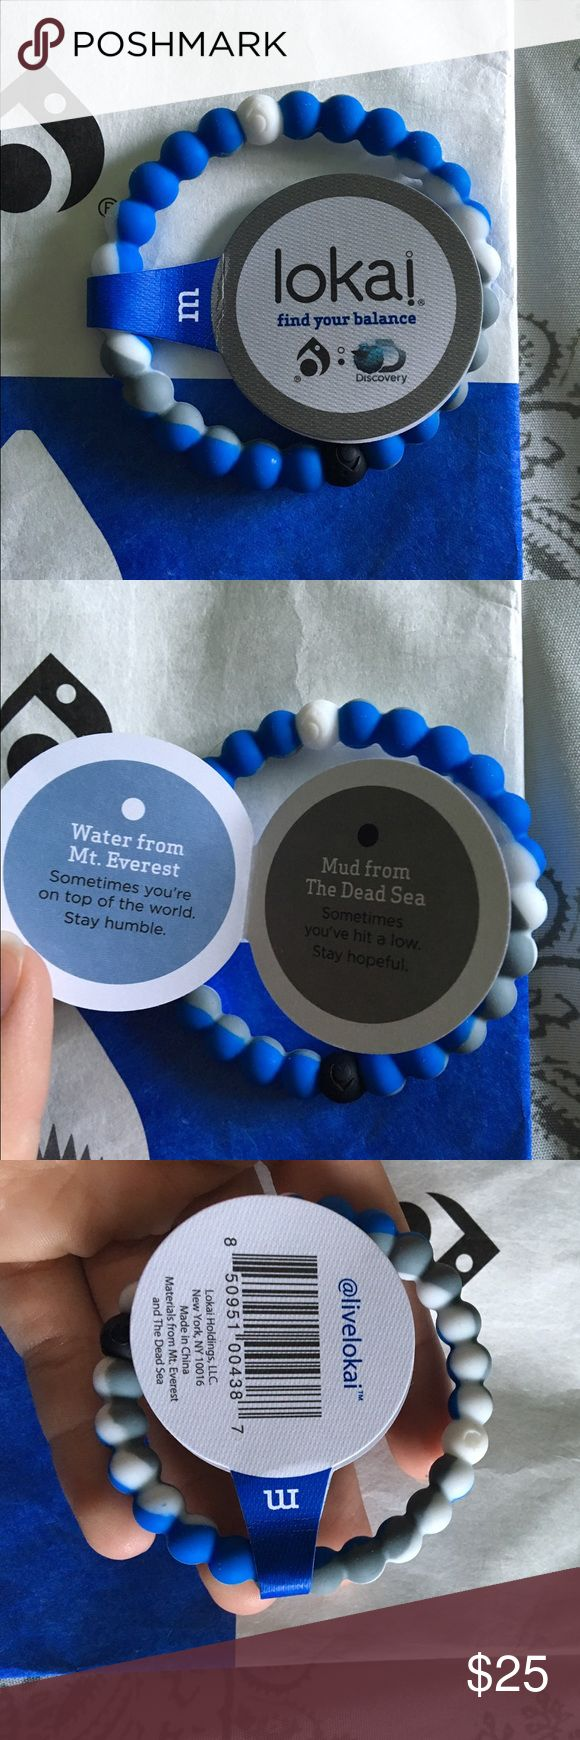 Limited edition Shark Lokai bracelet Never worn. Just got it in the mail today Jewelry Earrings